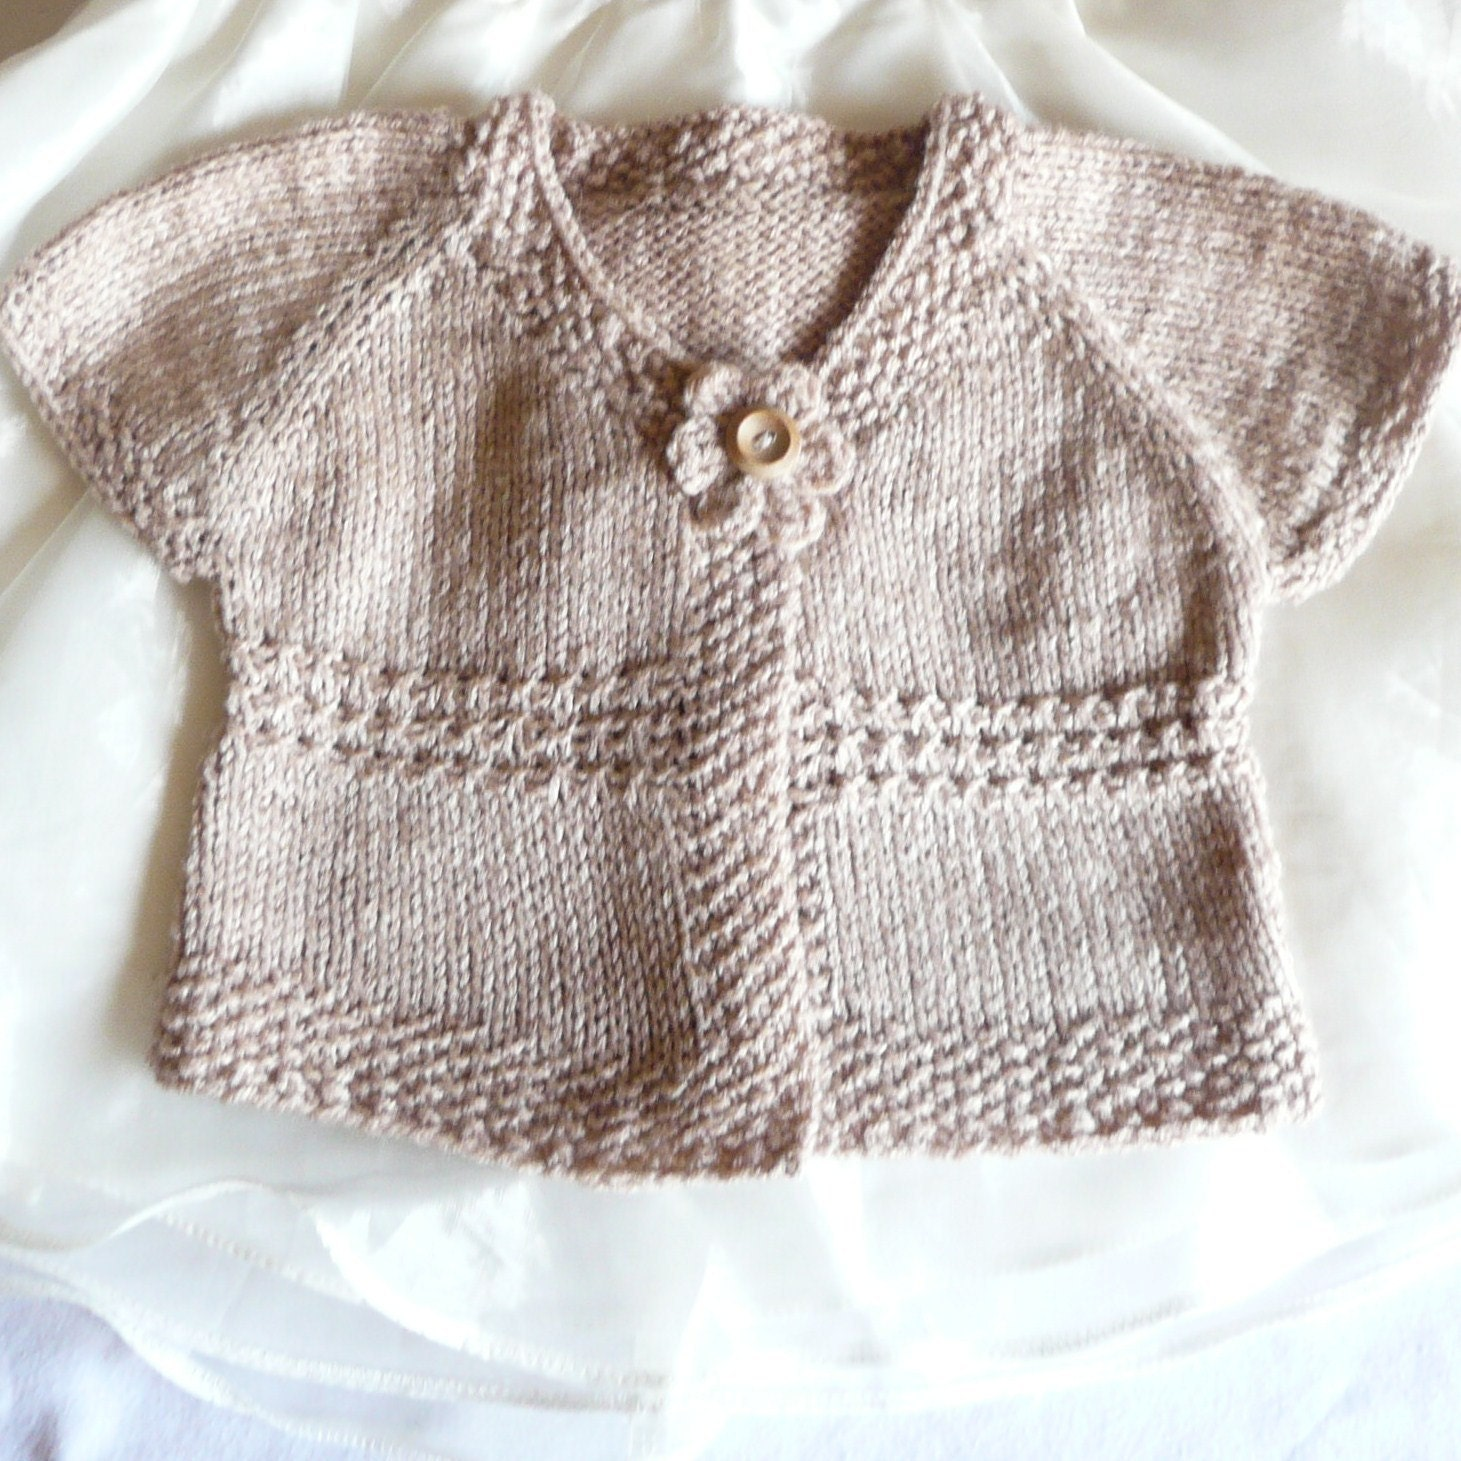 Knitting Patterns Baby Sweaters Top Down : Knitting Pattern Cardigan Sweater Emma a Seamless Top Down